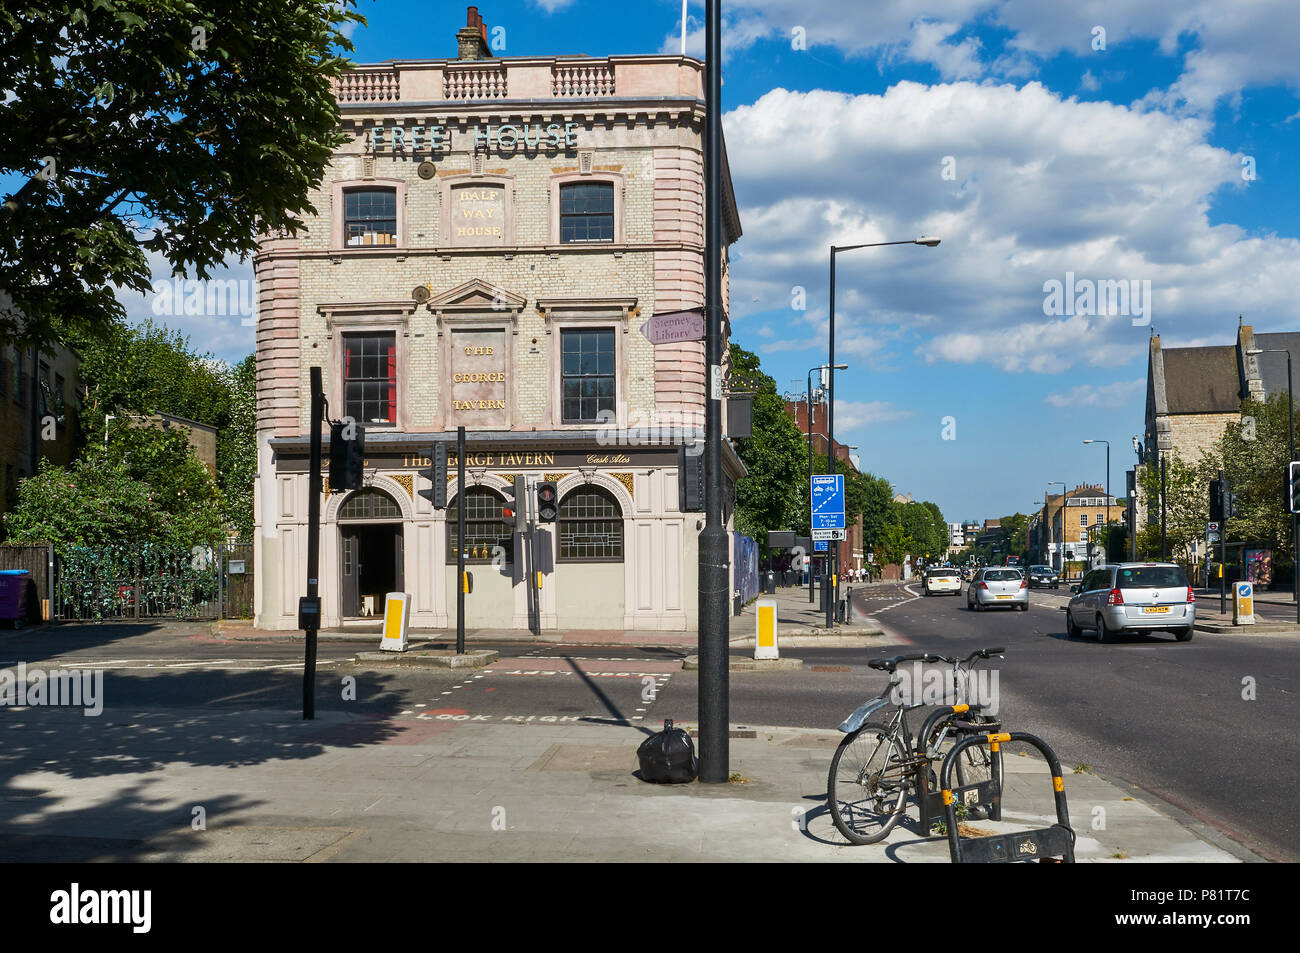 The historic George Tavern pub on Commercial Road, Stepney, East London UK, with Jubilee Street in foreground - Stock Image